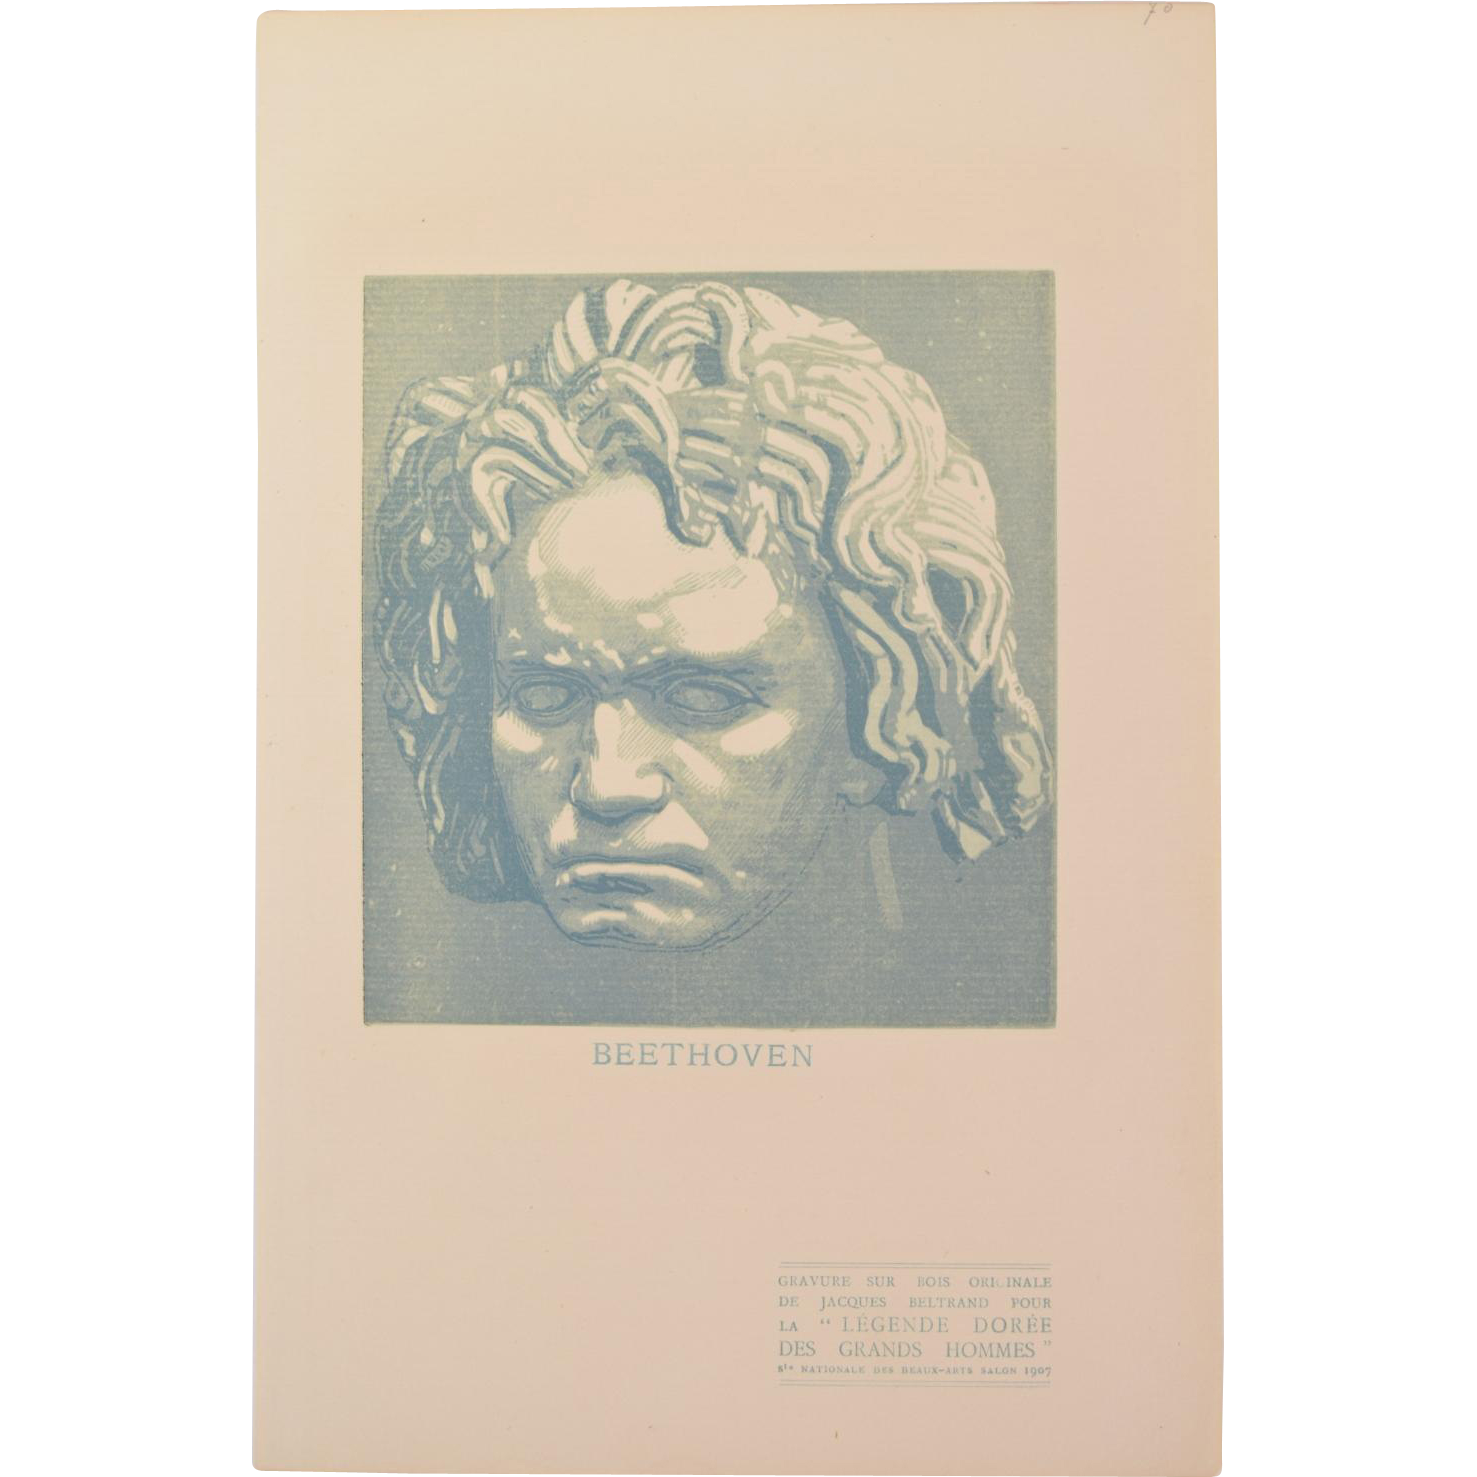 Beethoven drawing engraving. Jacques beltrand wood gazette